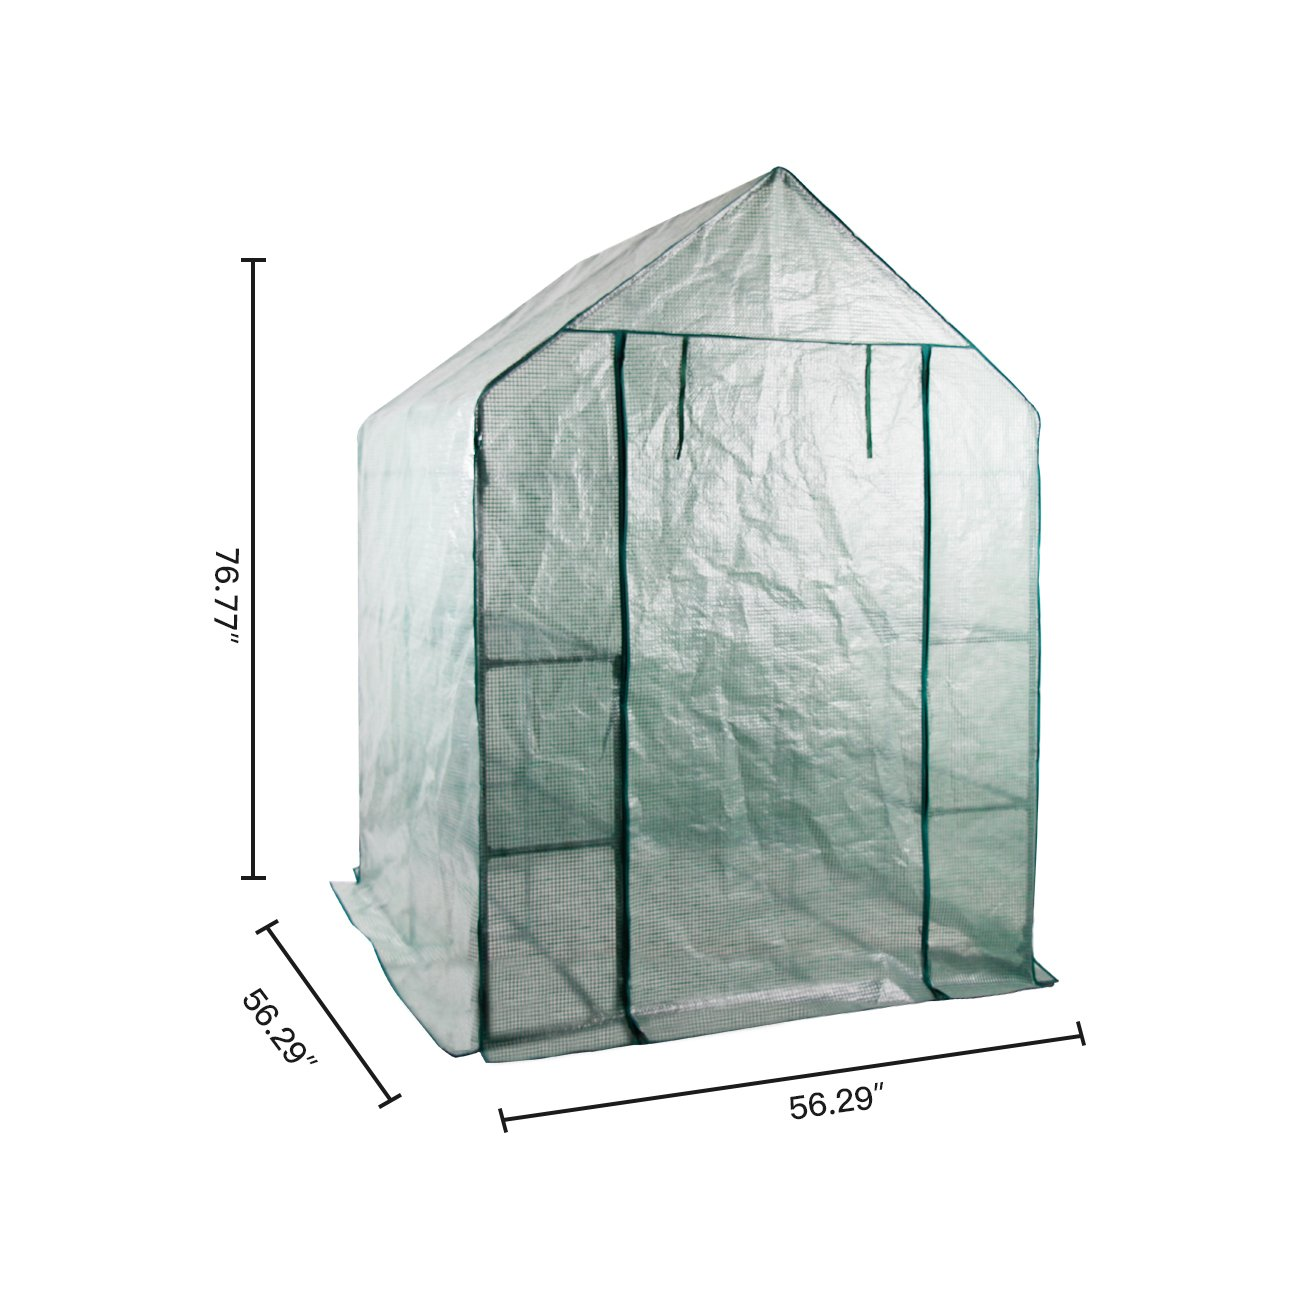 AODAILIHB Reinforced PE Net 6 Layers 8 Shelves Greenhouse Suitable for Lawn and Garden Steel Structure Assembly, 8 Fixed Buttons 4 Floor Fasteners, H x L x W:76.77 x 56.29 x 56.29 inch (02) by AODAILIHB (Image #4)